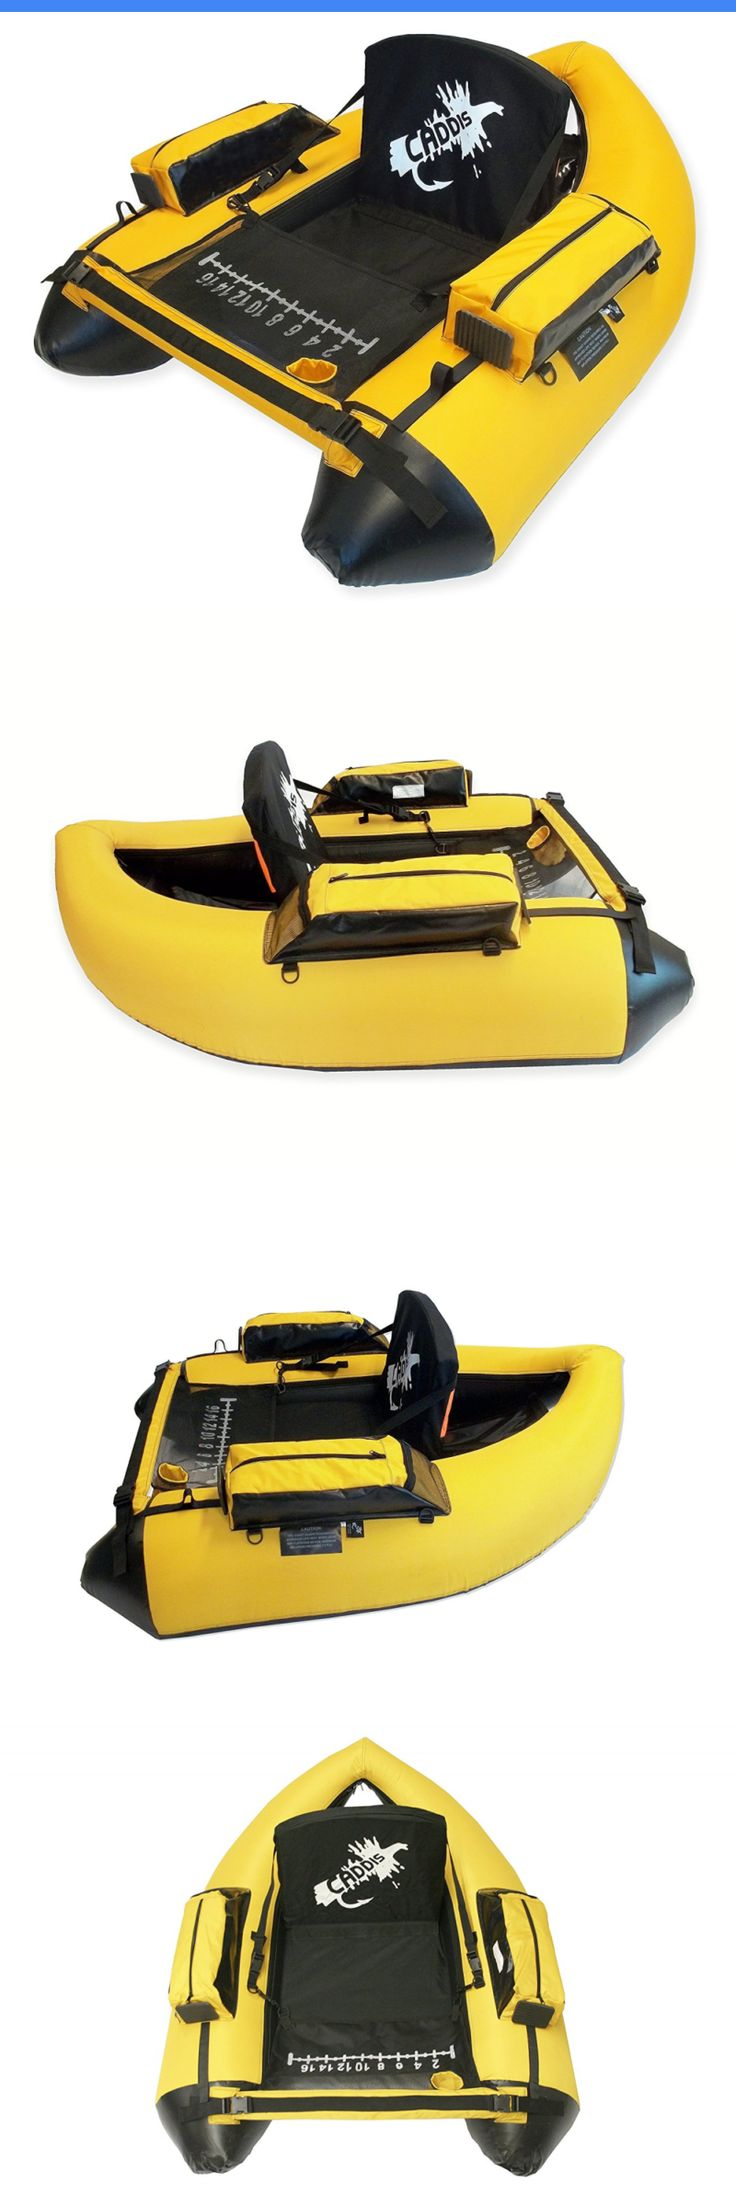 Float Tubes 179995: Caddis Sports Premier Plus Float Tube, Yellow BUY IT NOW ONLY: $189.58